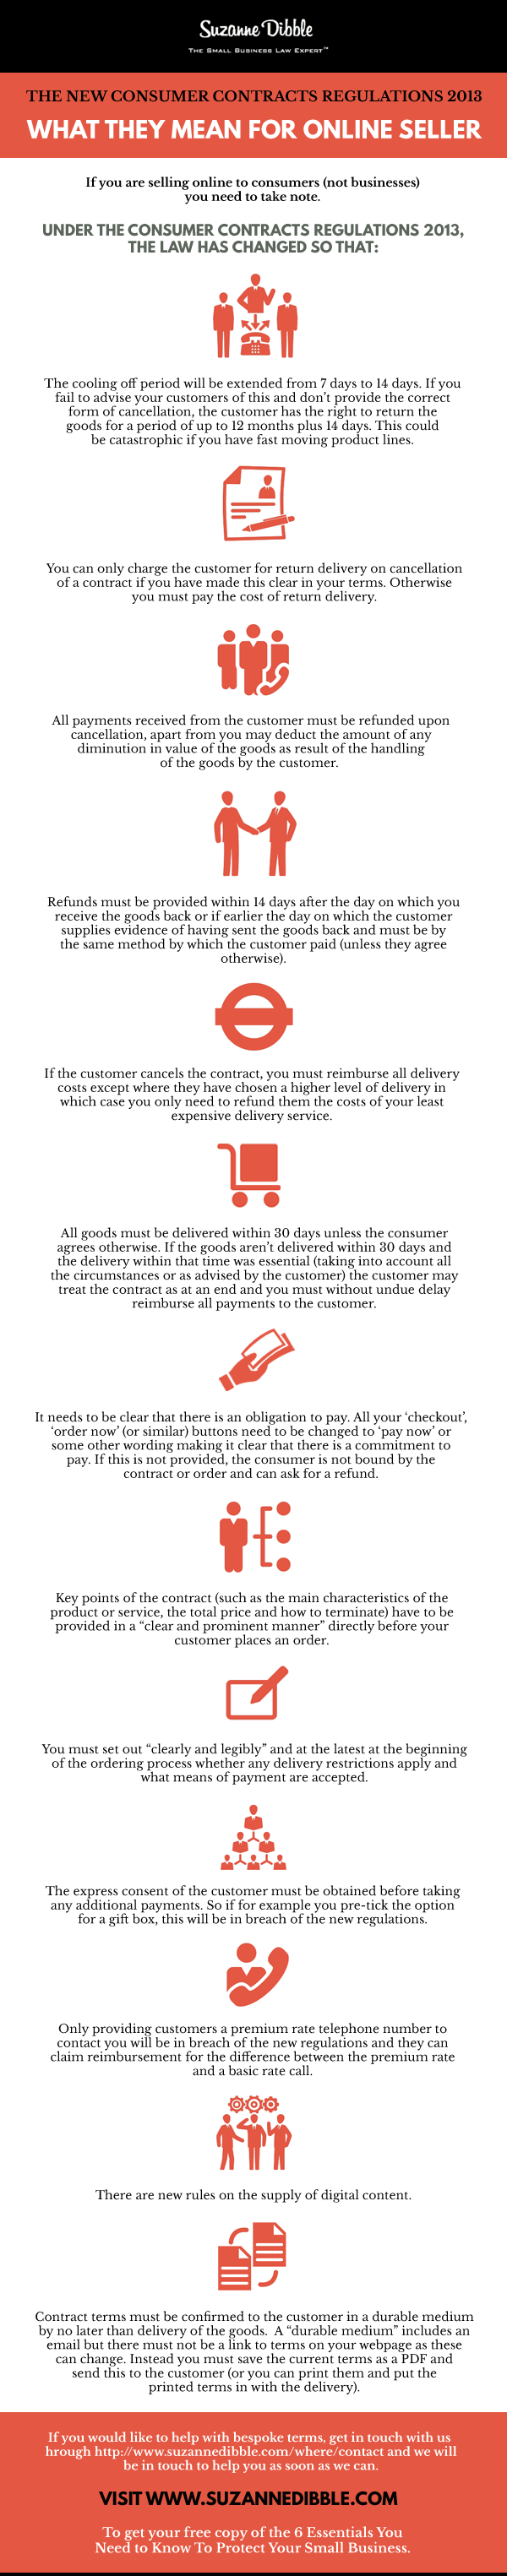 the-new-consumer-contracts-regulations-2013